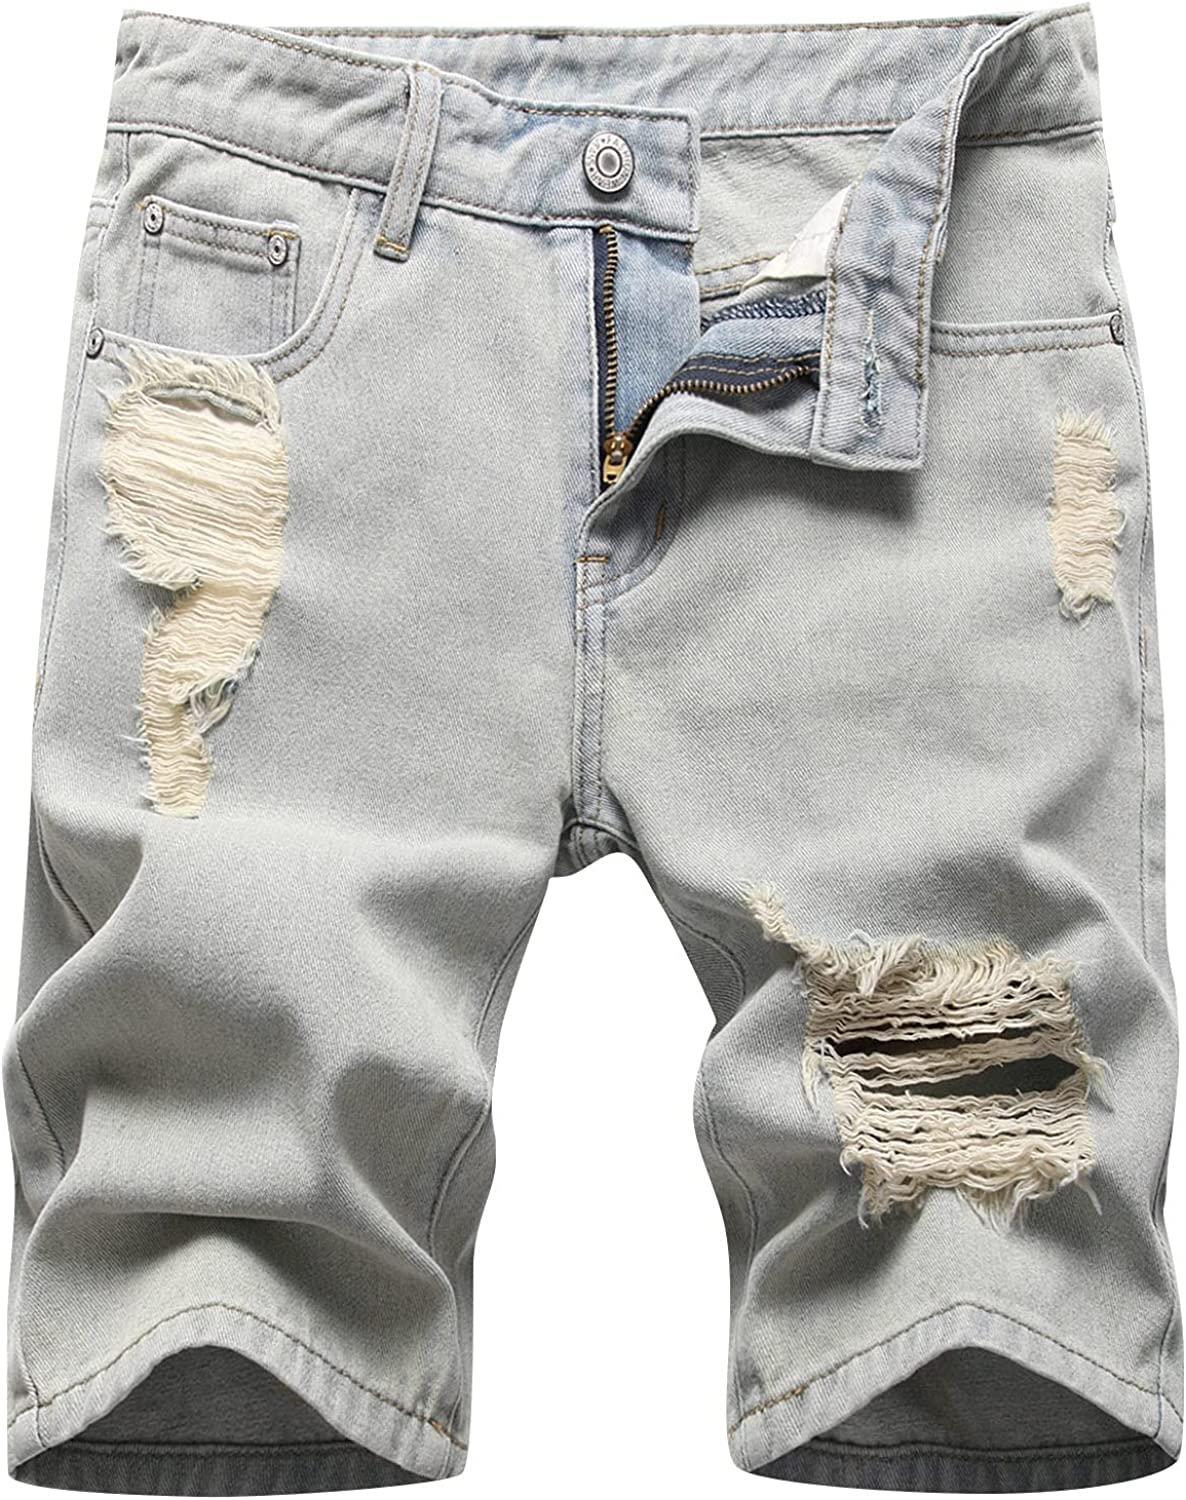 Men's Ripped Jeans Shorts Cut Off Frayed Retro Denim Shorts with Patches Summer Fashion Casual Short Pants - Limsea